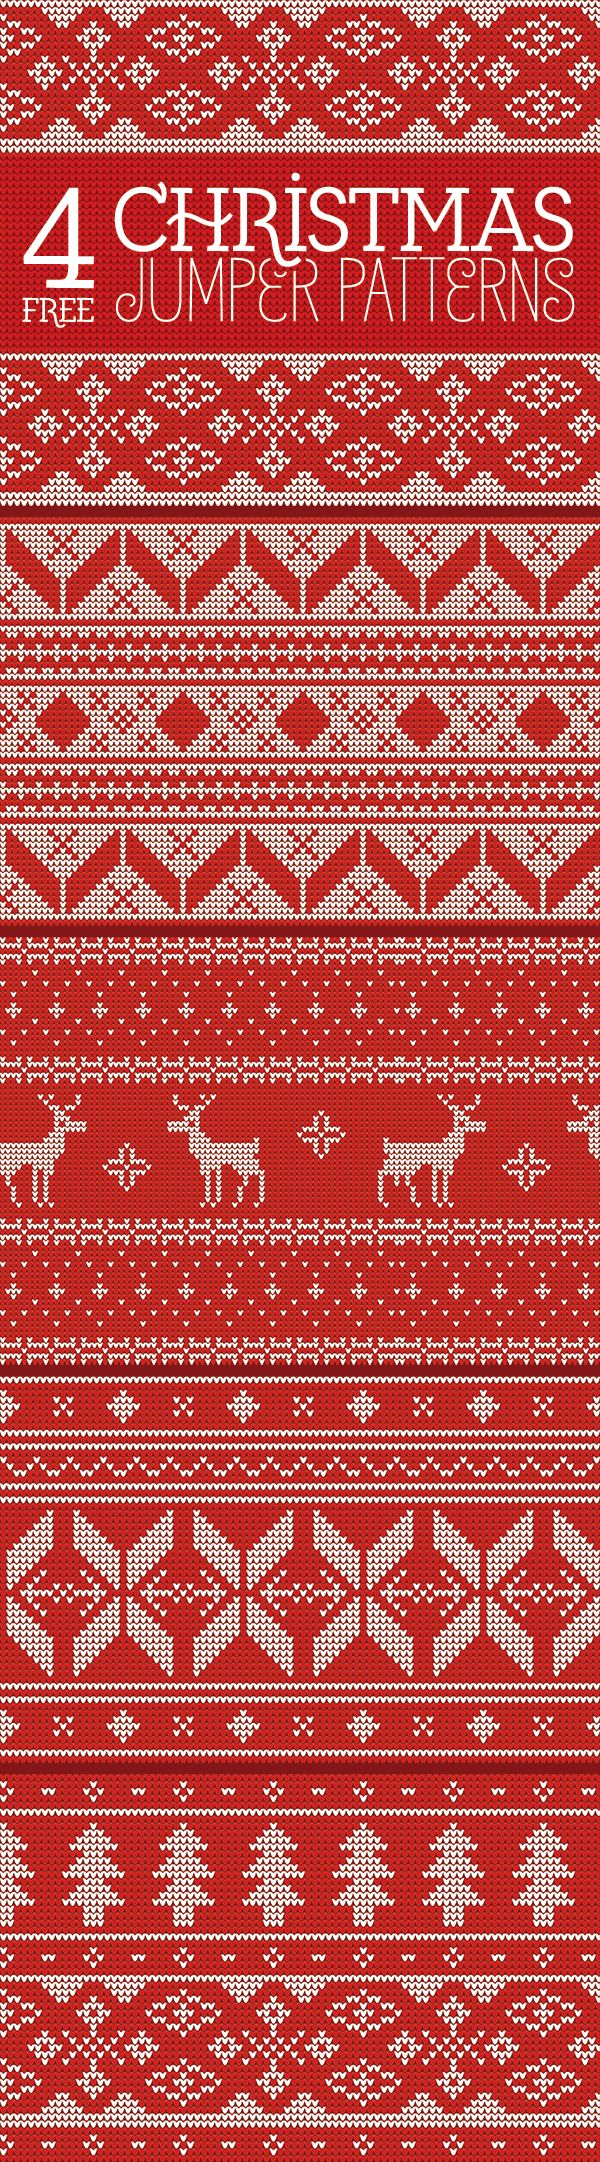 Use charts for dishtowl? 4 Free Knitted Christmas Jumper Patterns (16 MB) | blog.spoongraphics.co.uk